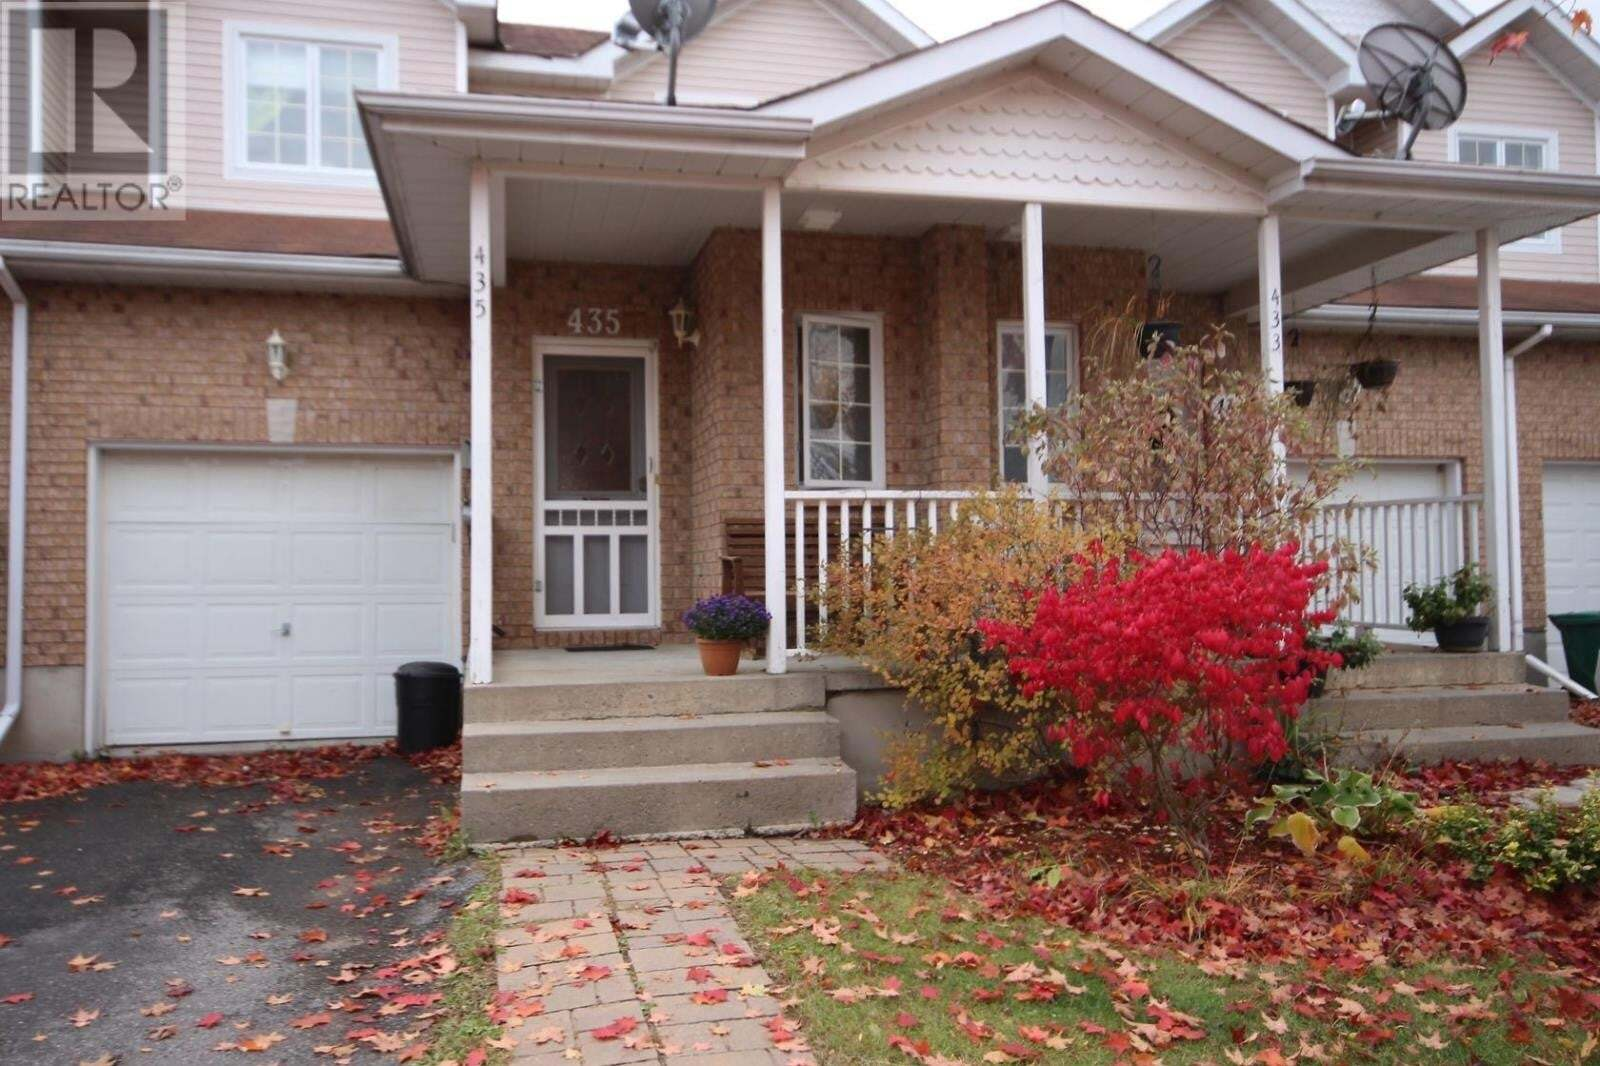 Townhouse for sale at 435 Molly Mcglynn St Kingston Ontario - MLS: K20006155